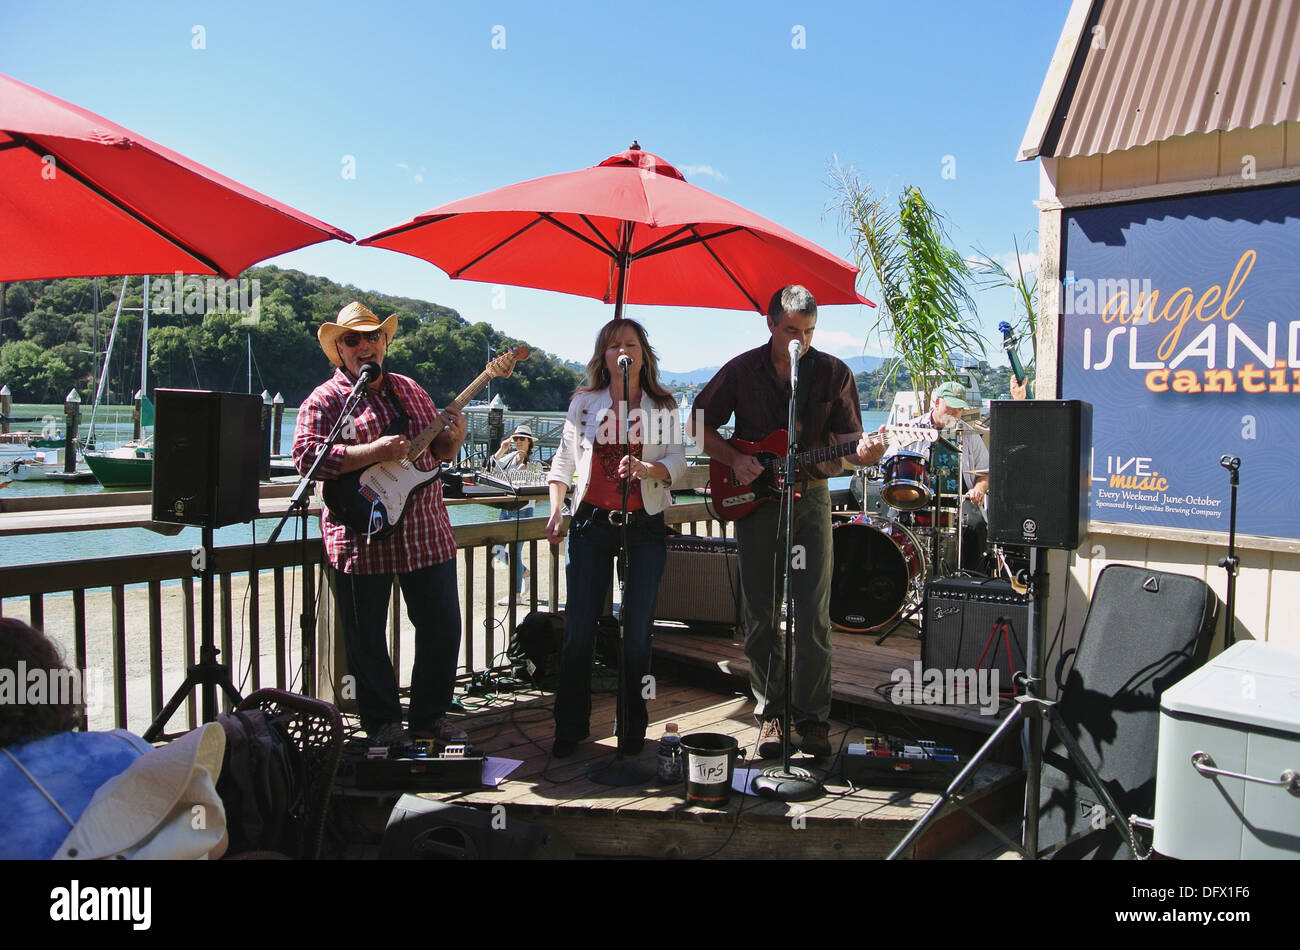 entertainers playing music on sunday on angel Island - Stock Image